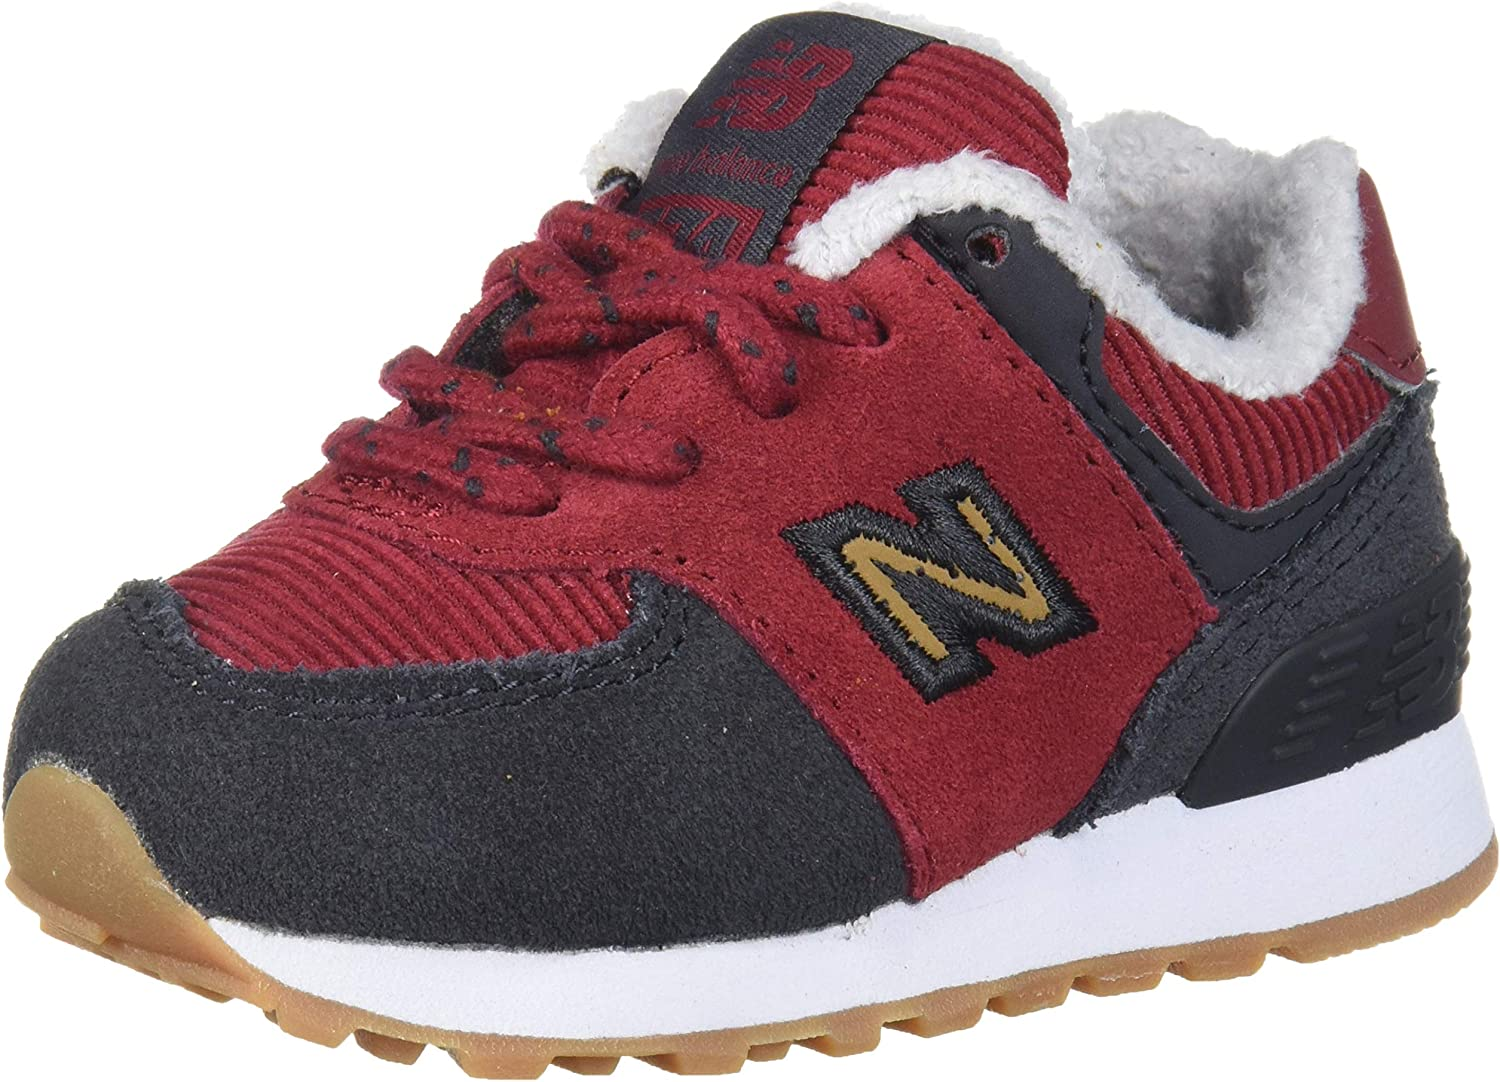 New Balance Kids' 574 V1 Winter Suede Lace-up Sneaker